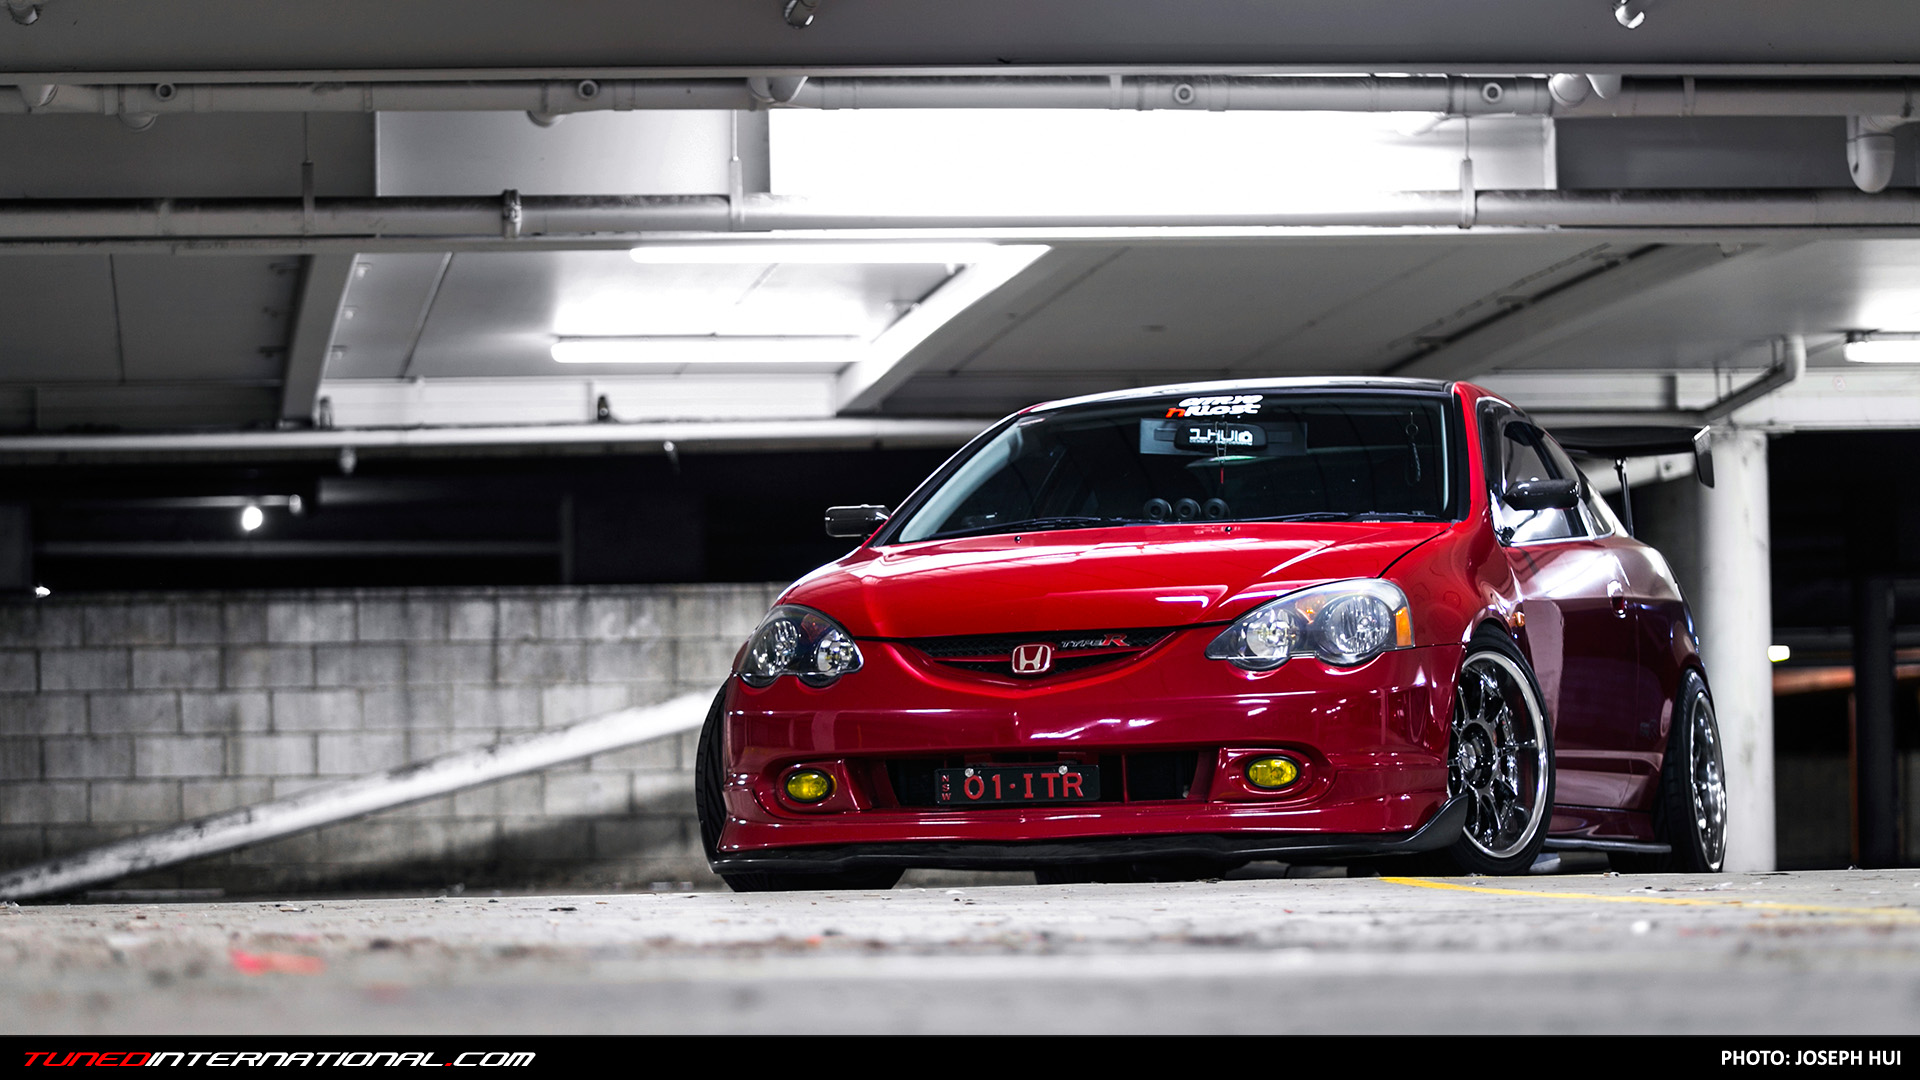 The Red Devil Paul S Honda Integra Dc5 Type R Tuned International